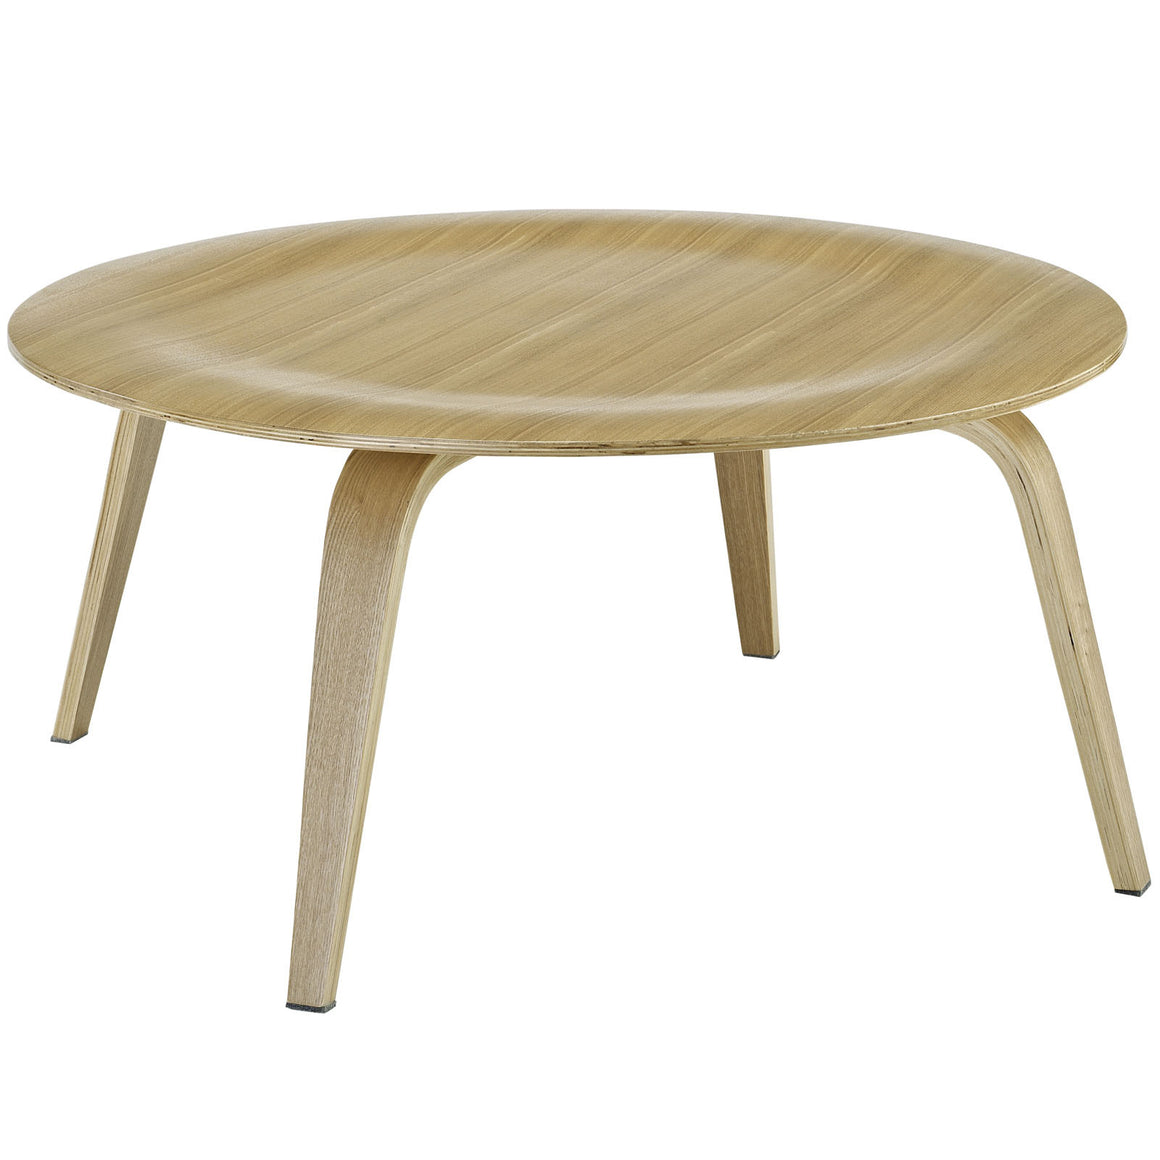 Classic Design Plywood Coffee Table in Natural